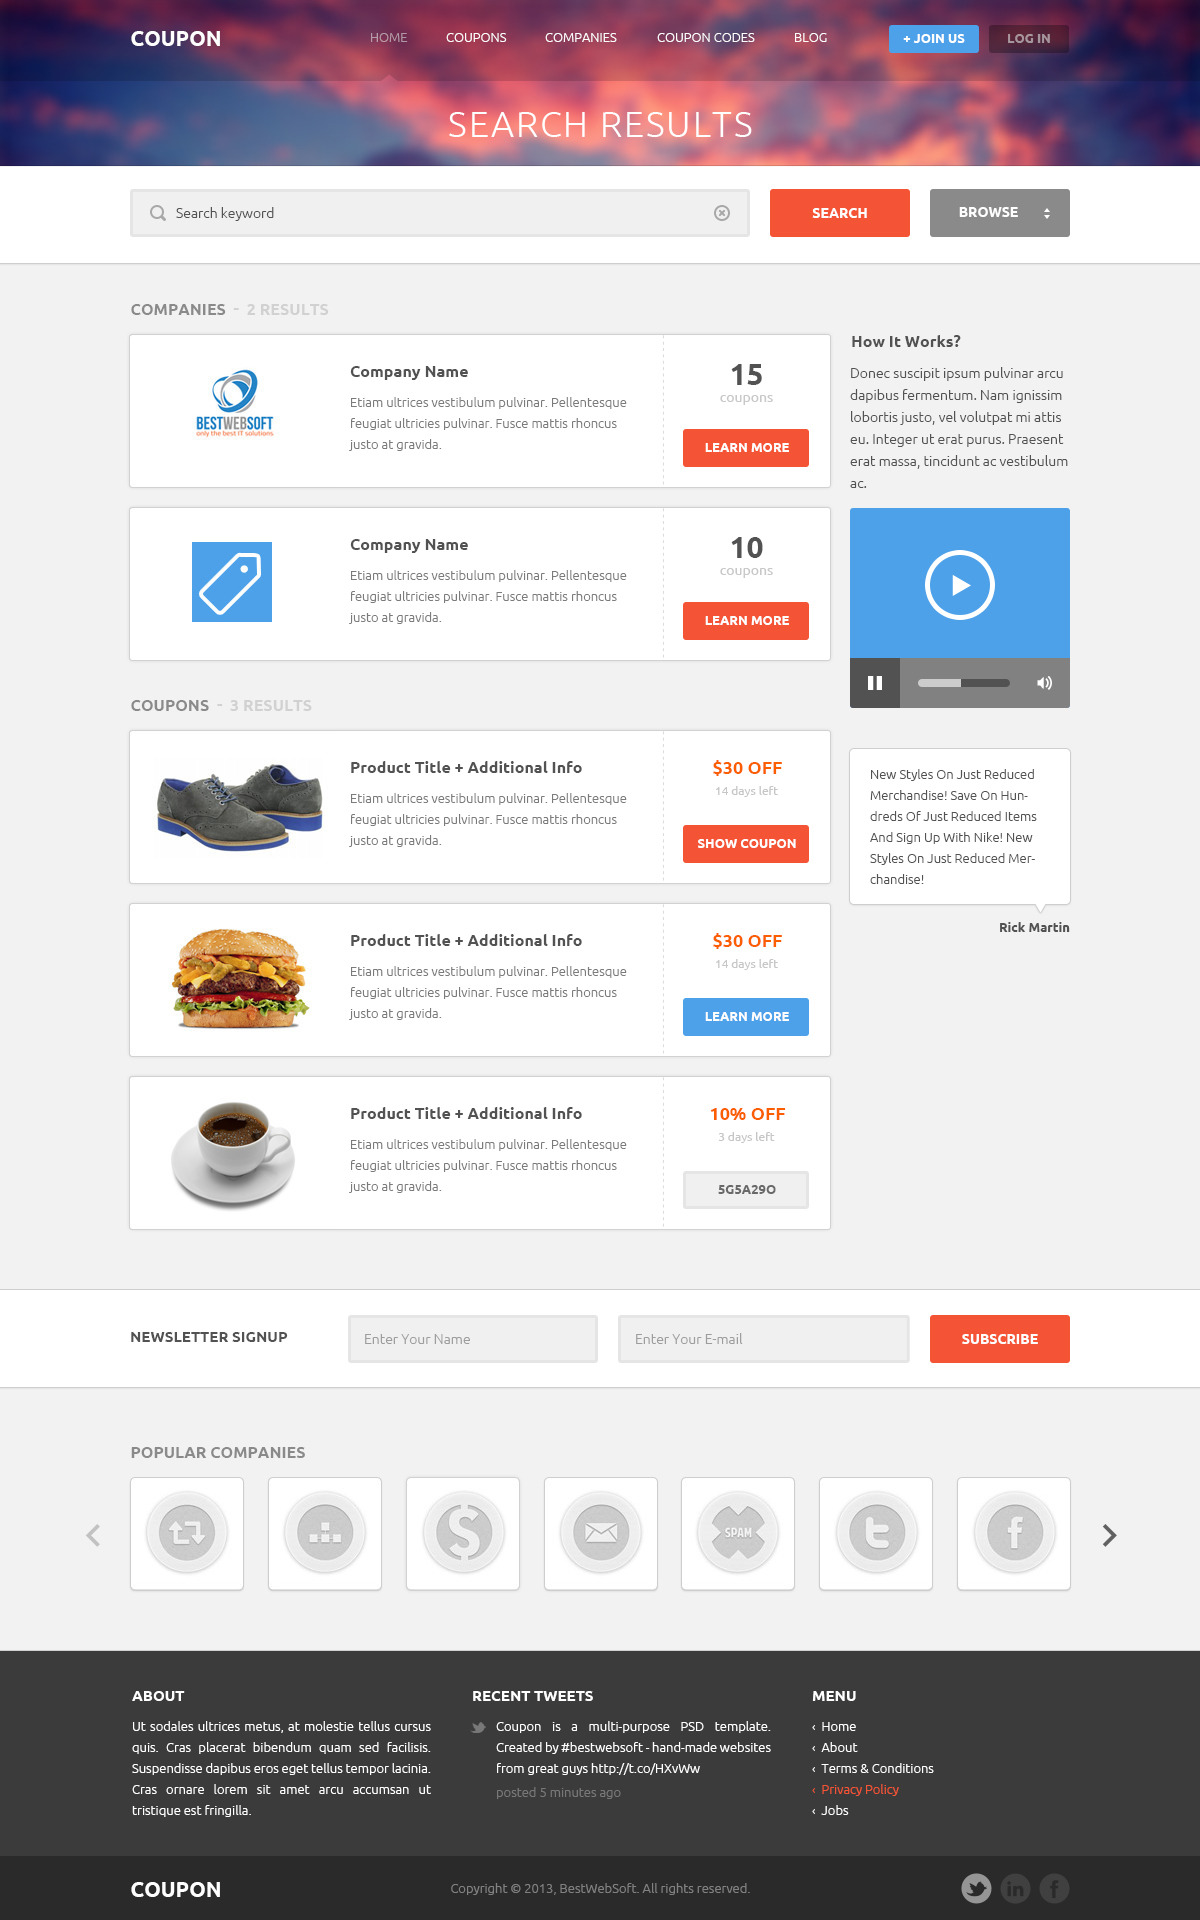 Amazing 1 Inch Hexagon Template Small 1 Page Resume Format Flat 1 Page Resume Format Download 1 Page Resume Format For Freshers Youthful 1 Year Experience Resume Format For Software Developer Purple10 Best Resume Samples Coupon   Coupons And Promo Codes PSD Template By Bestwebsoft ..